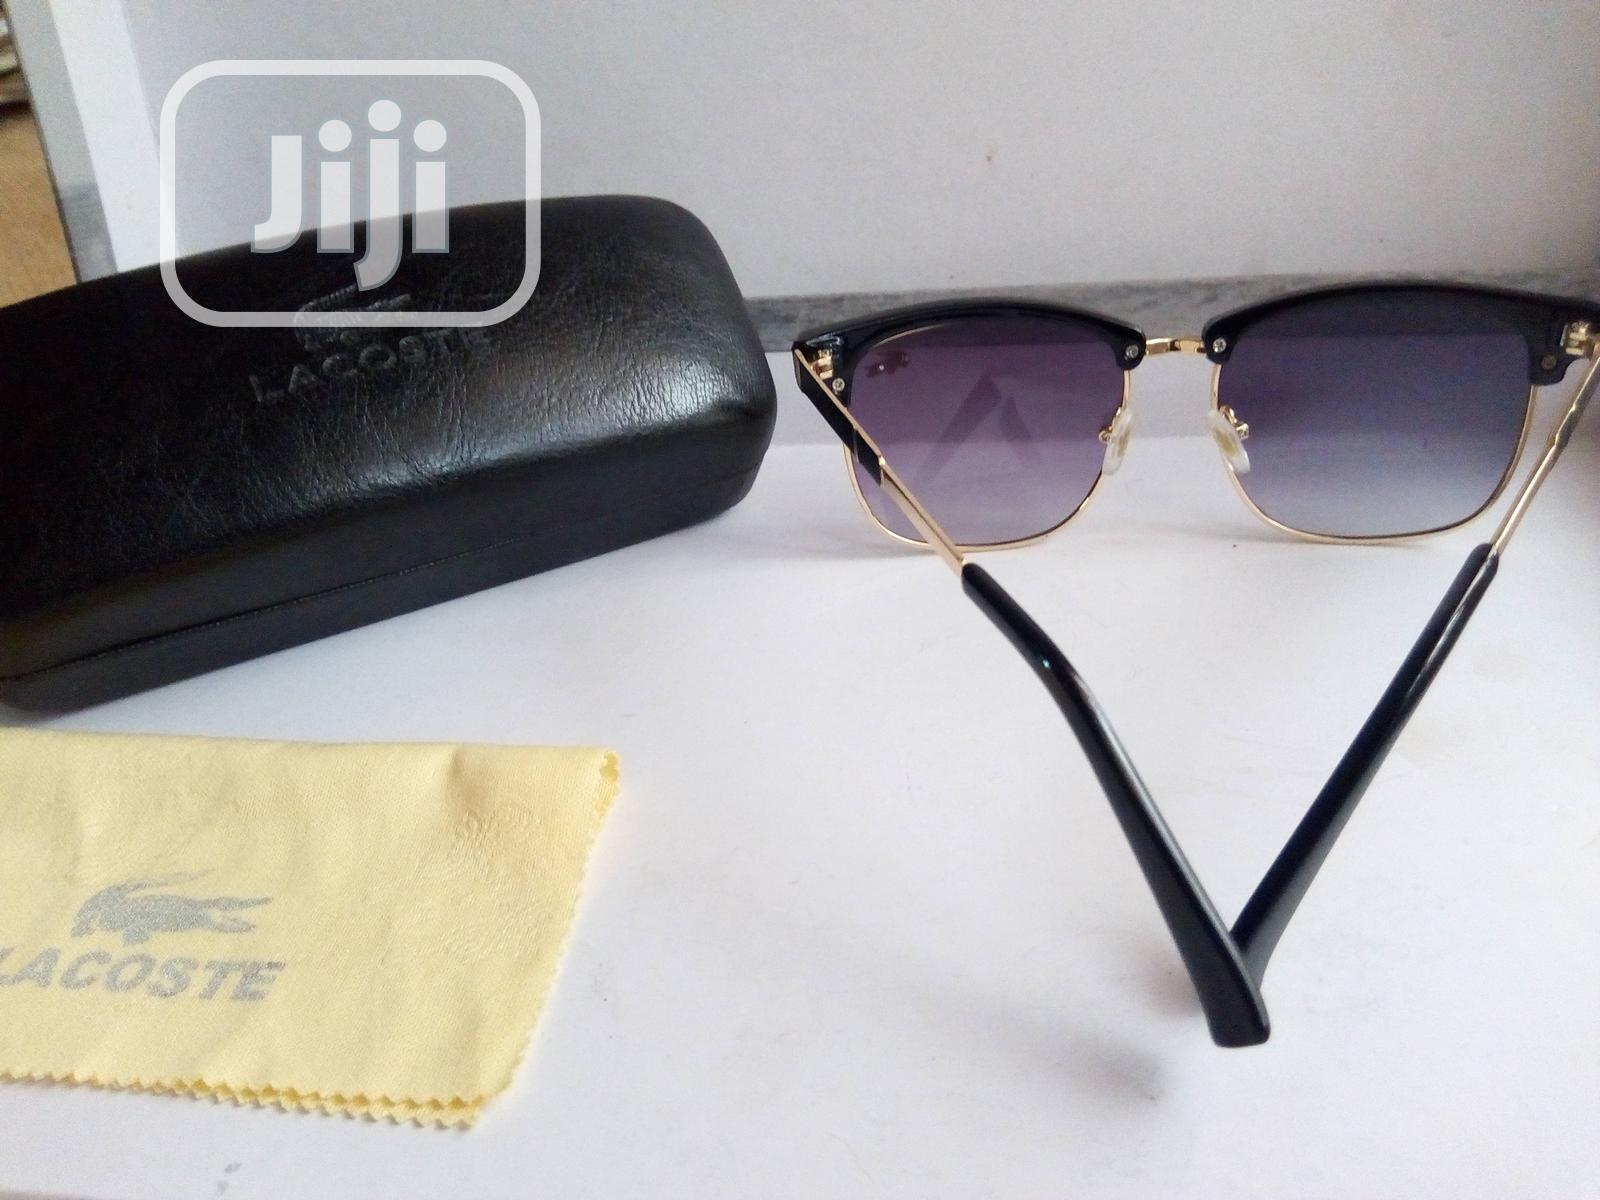 30% Off! Lacoste Men's Sunglasses | Clothing Accessories for sale in Surulere, Lagos State, Nigeria